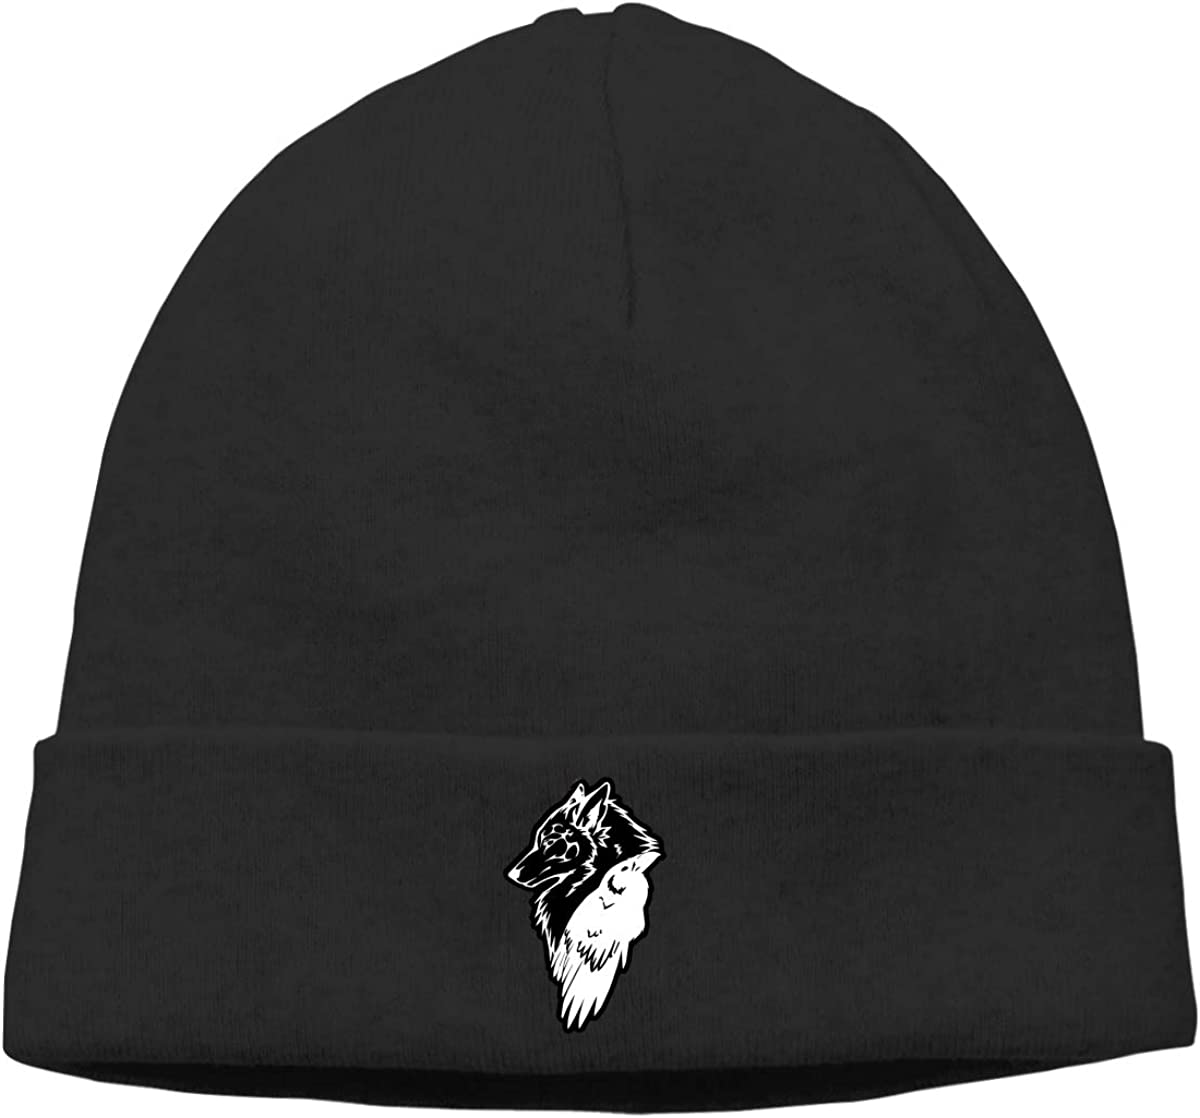 Nskngr Coats of Arms of El Salvador Cap Unisex Cuffed Deliciously Soft Daily Plain Skull Ski Slouchy Hat